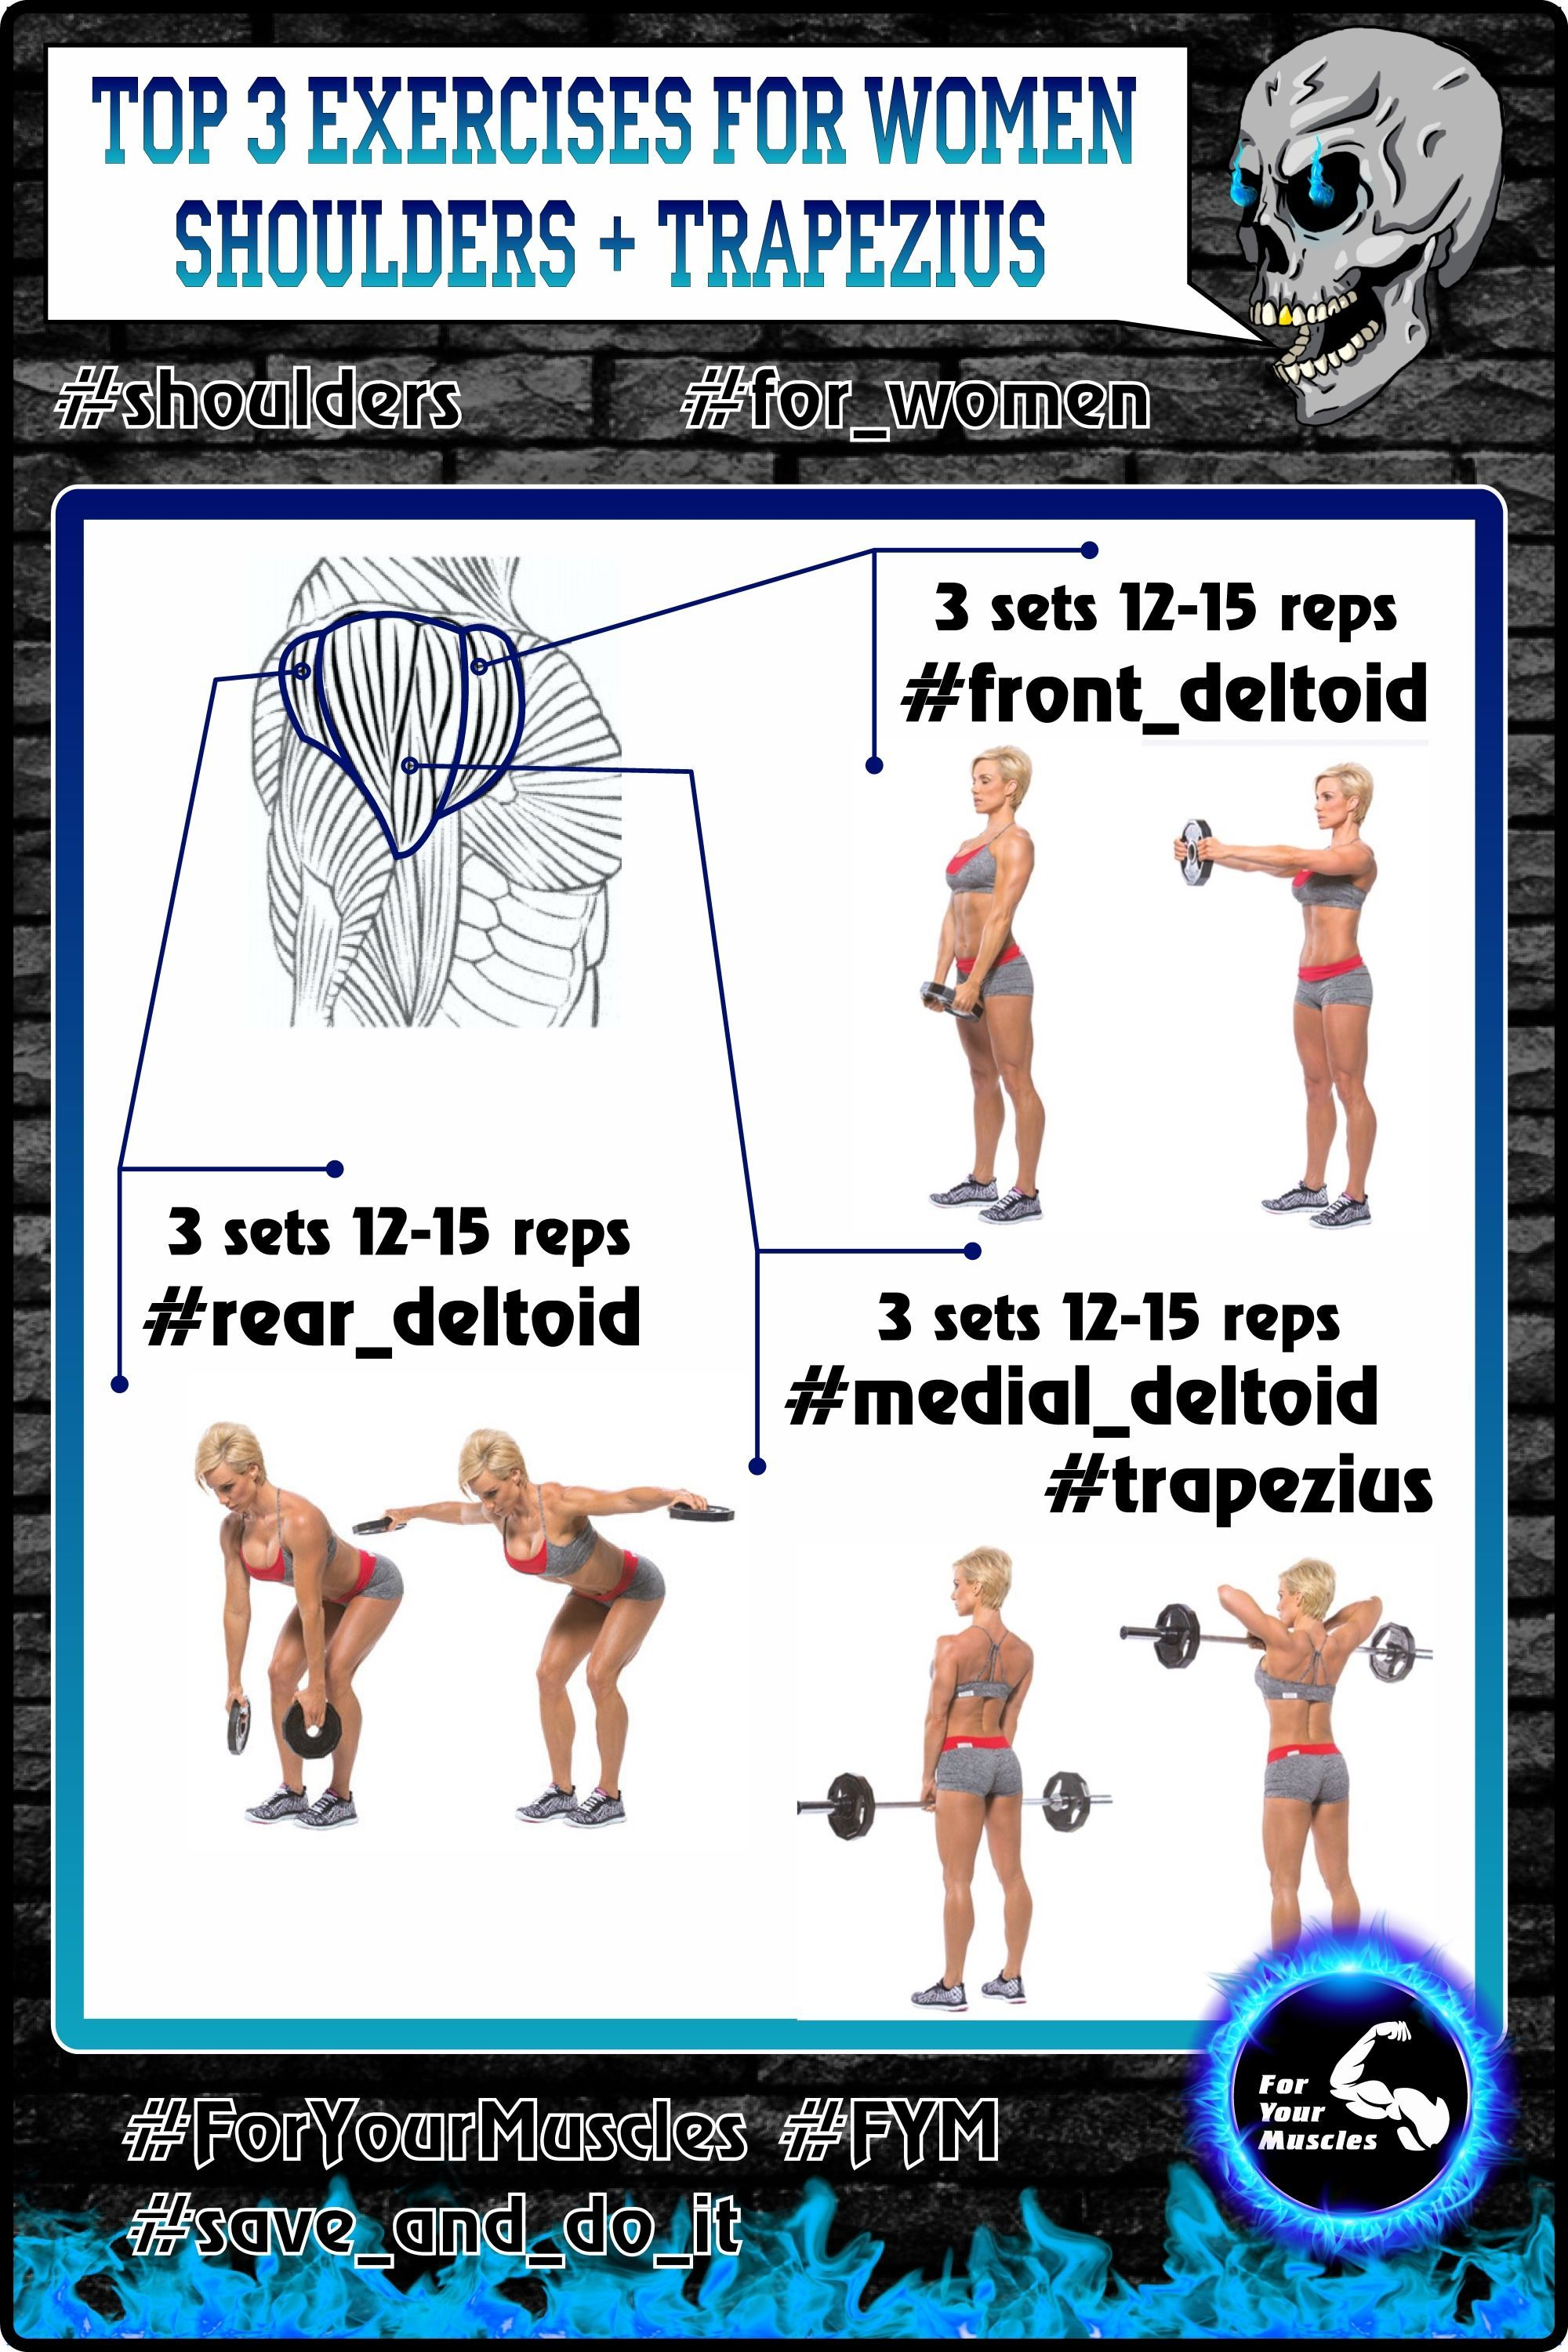 Great training for your shoulders trapezius fym